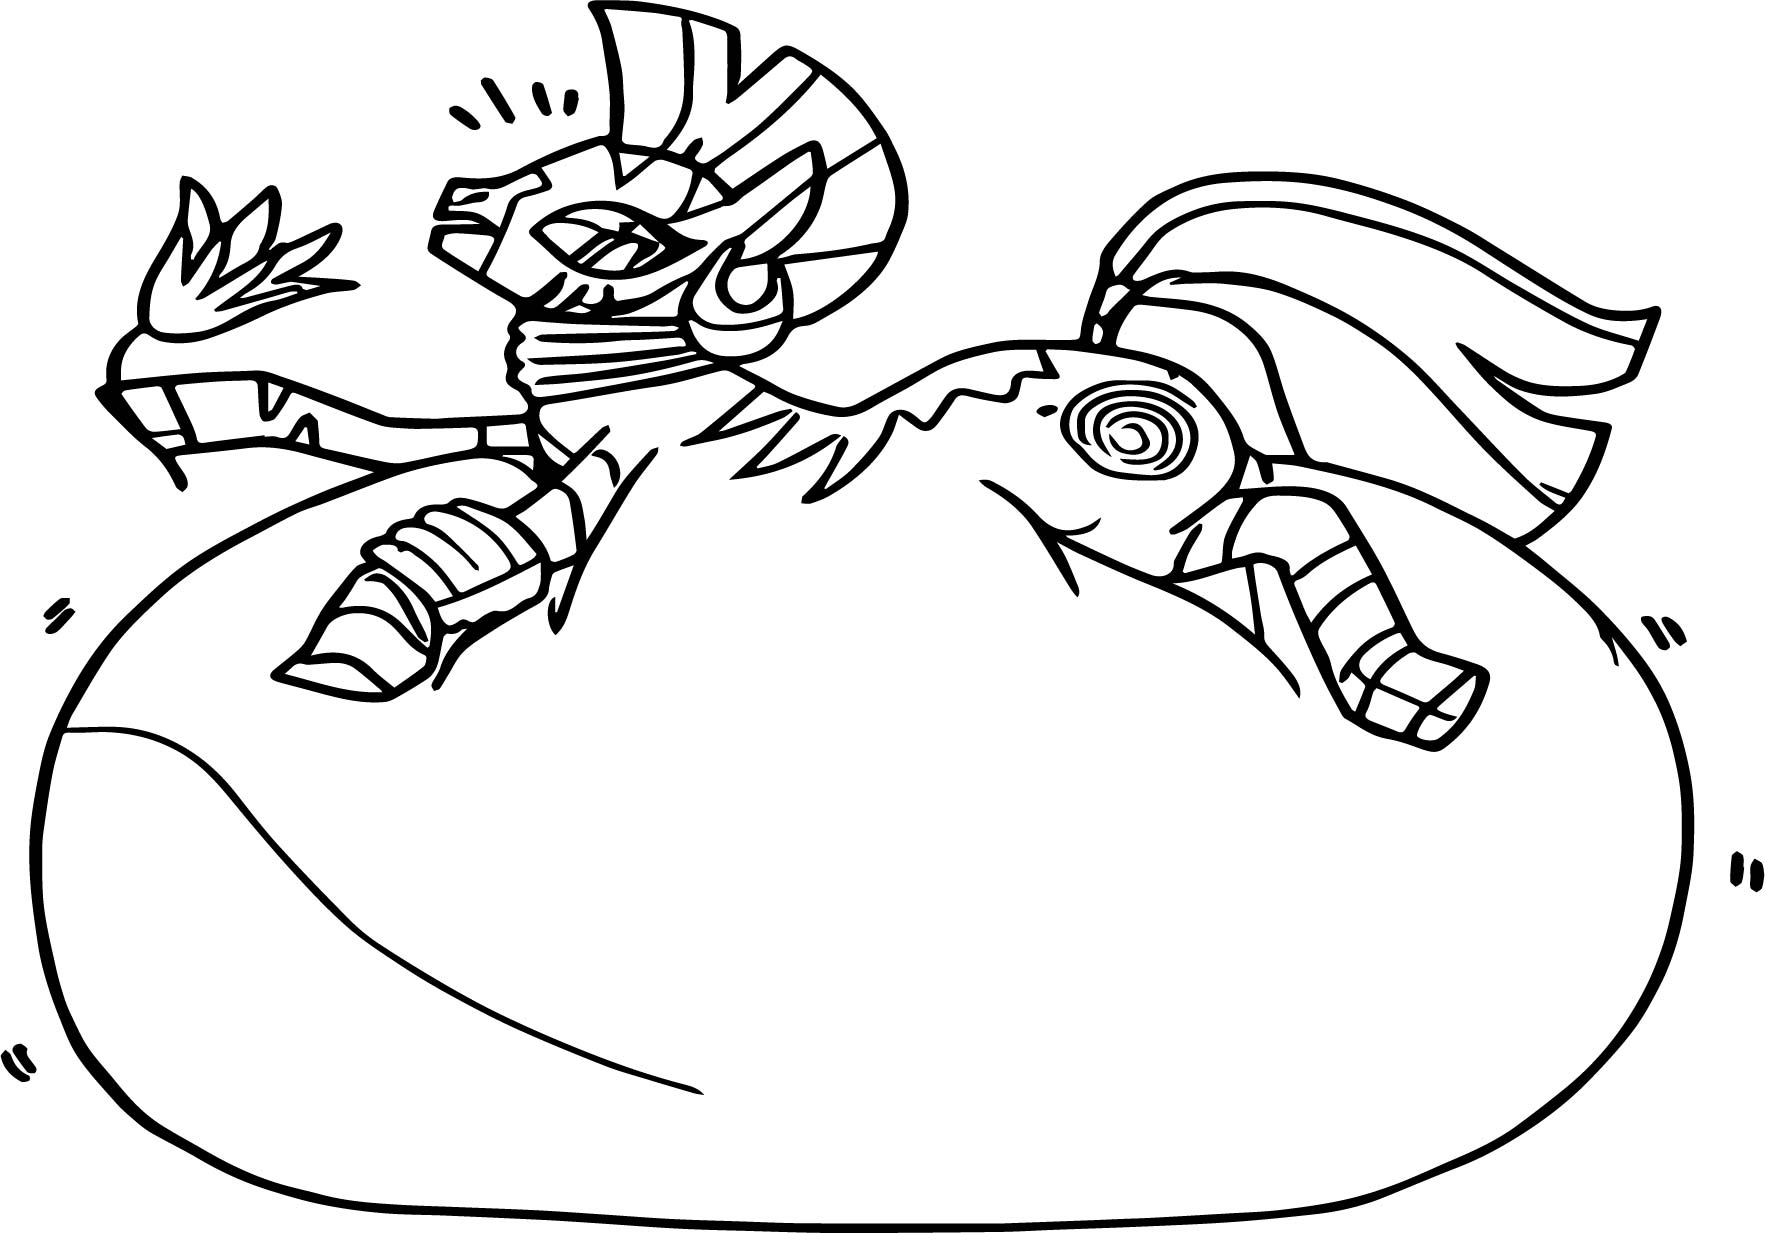 Questionable Plot Zecora Inflation Zebra Artist Colon Fathips Coloring Page